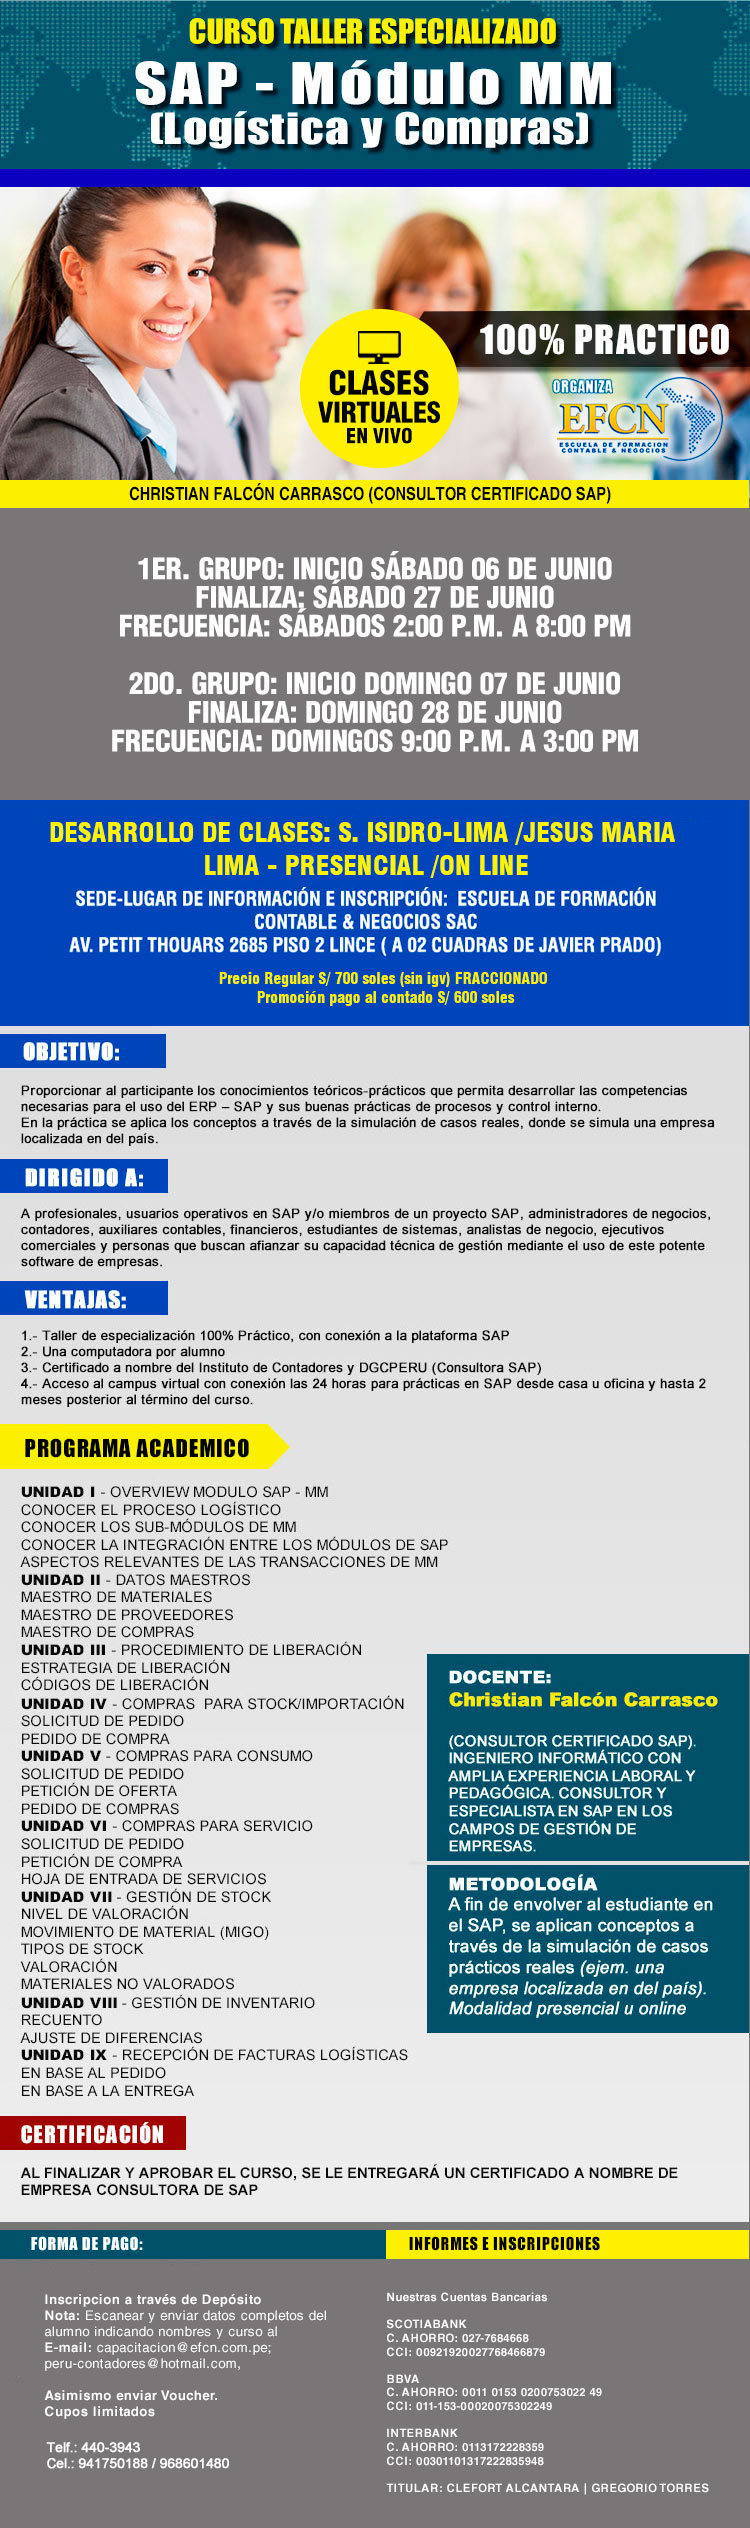 sap-mm-logistica-y-compras-JUNIO-2019